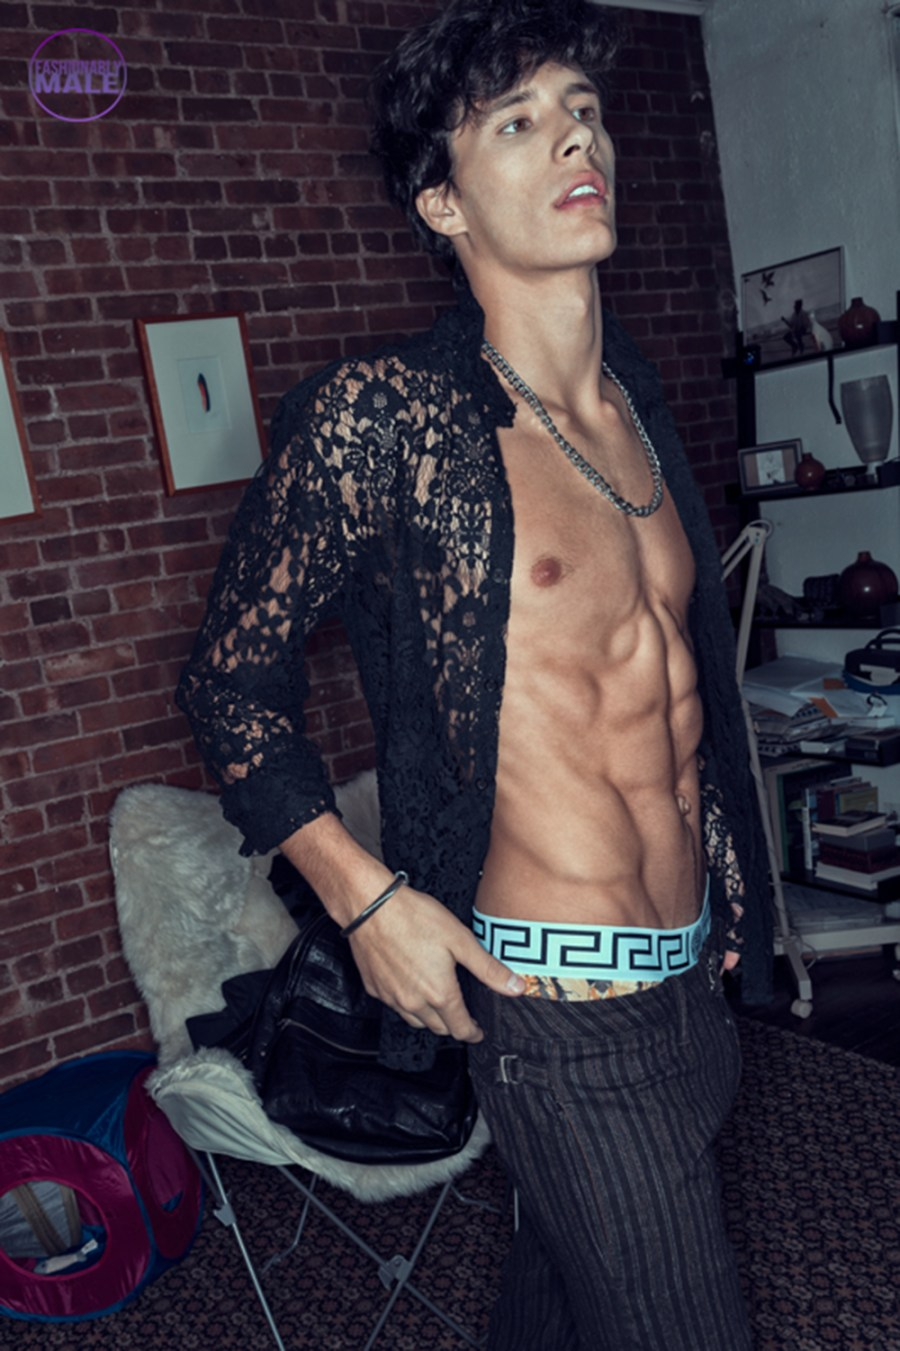 Mateo Birkner by Lagaret for Fashionably Male6